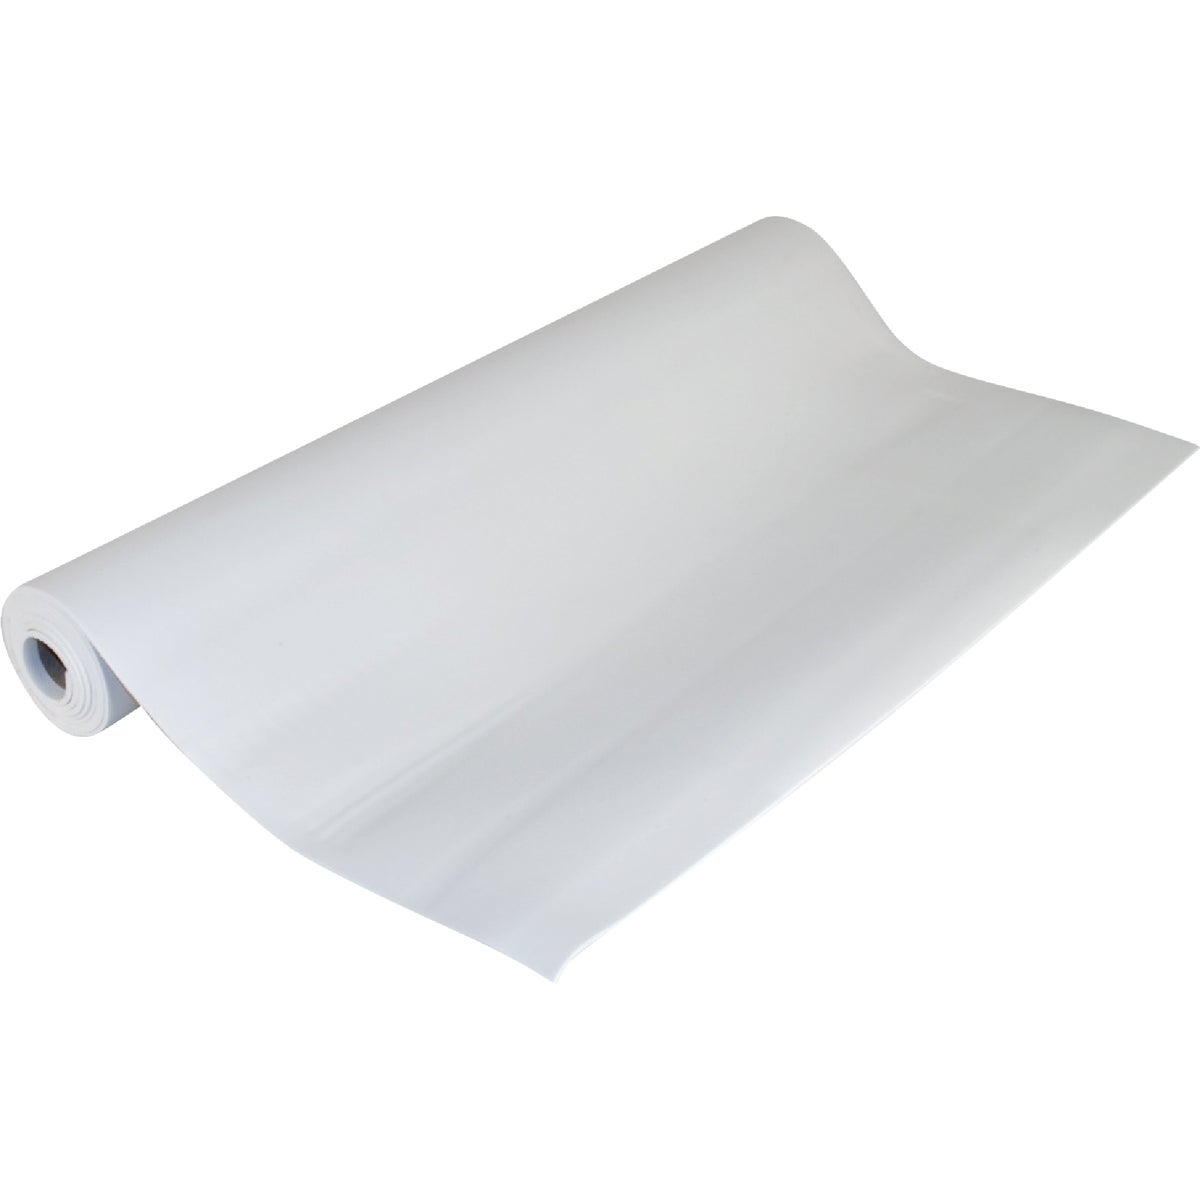 WHITE SOLID GRIP LINER - 04F-C6U52-01 by Kittrich Corp